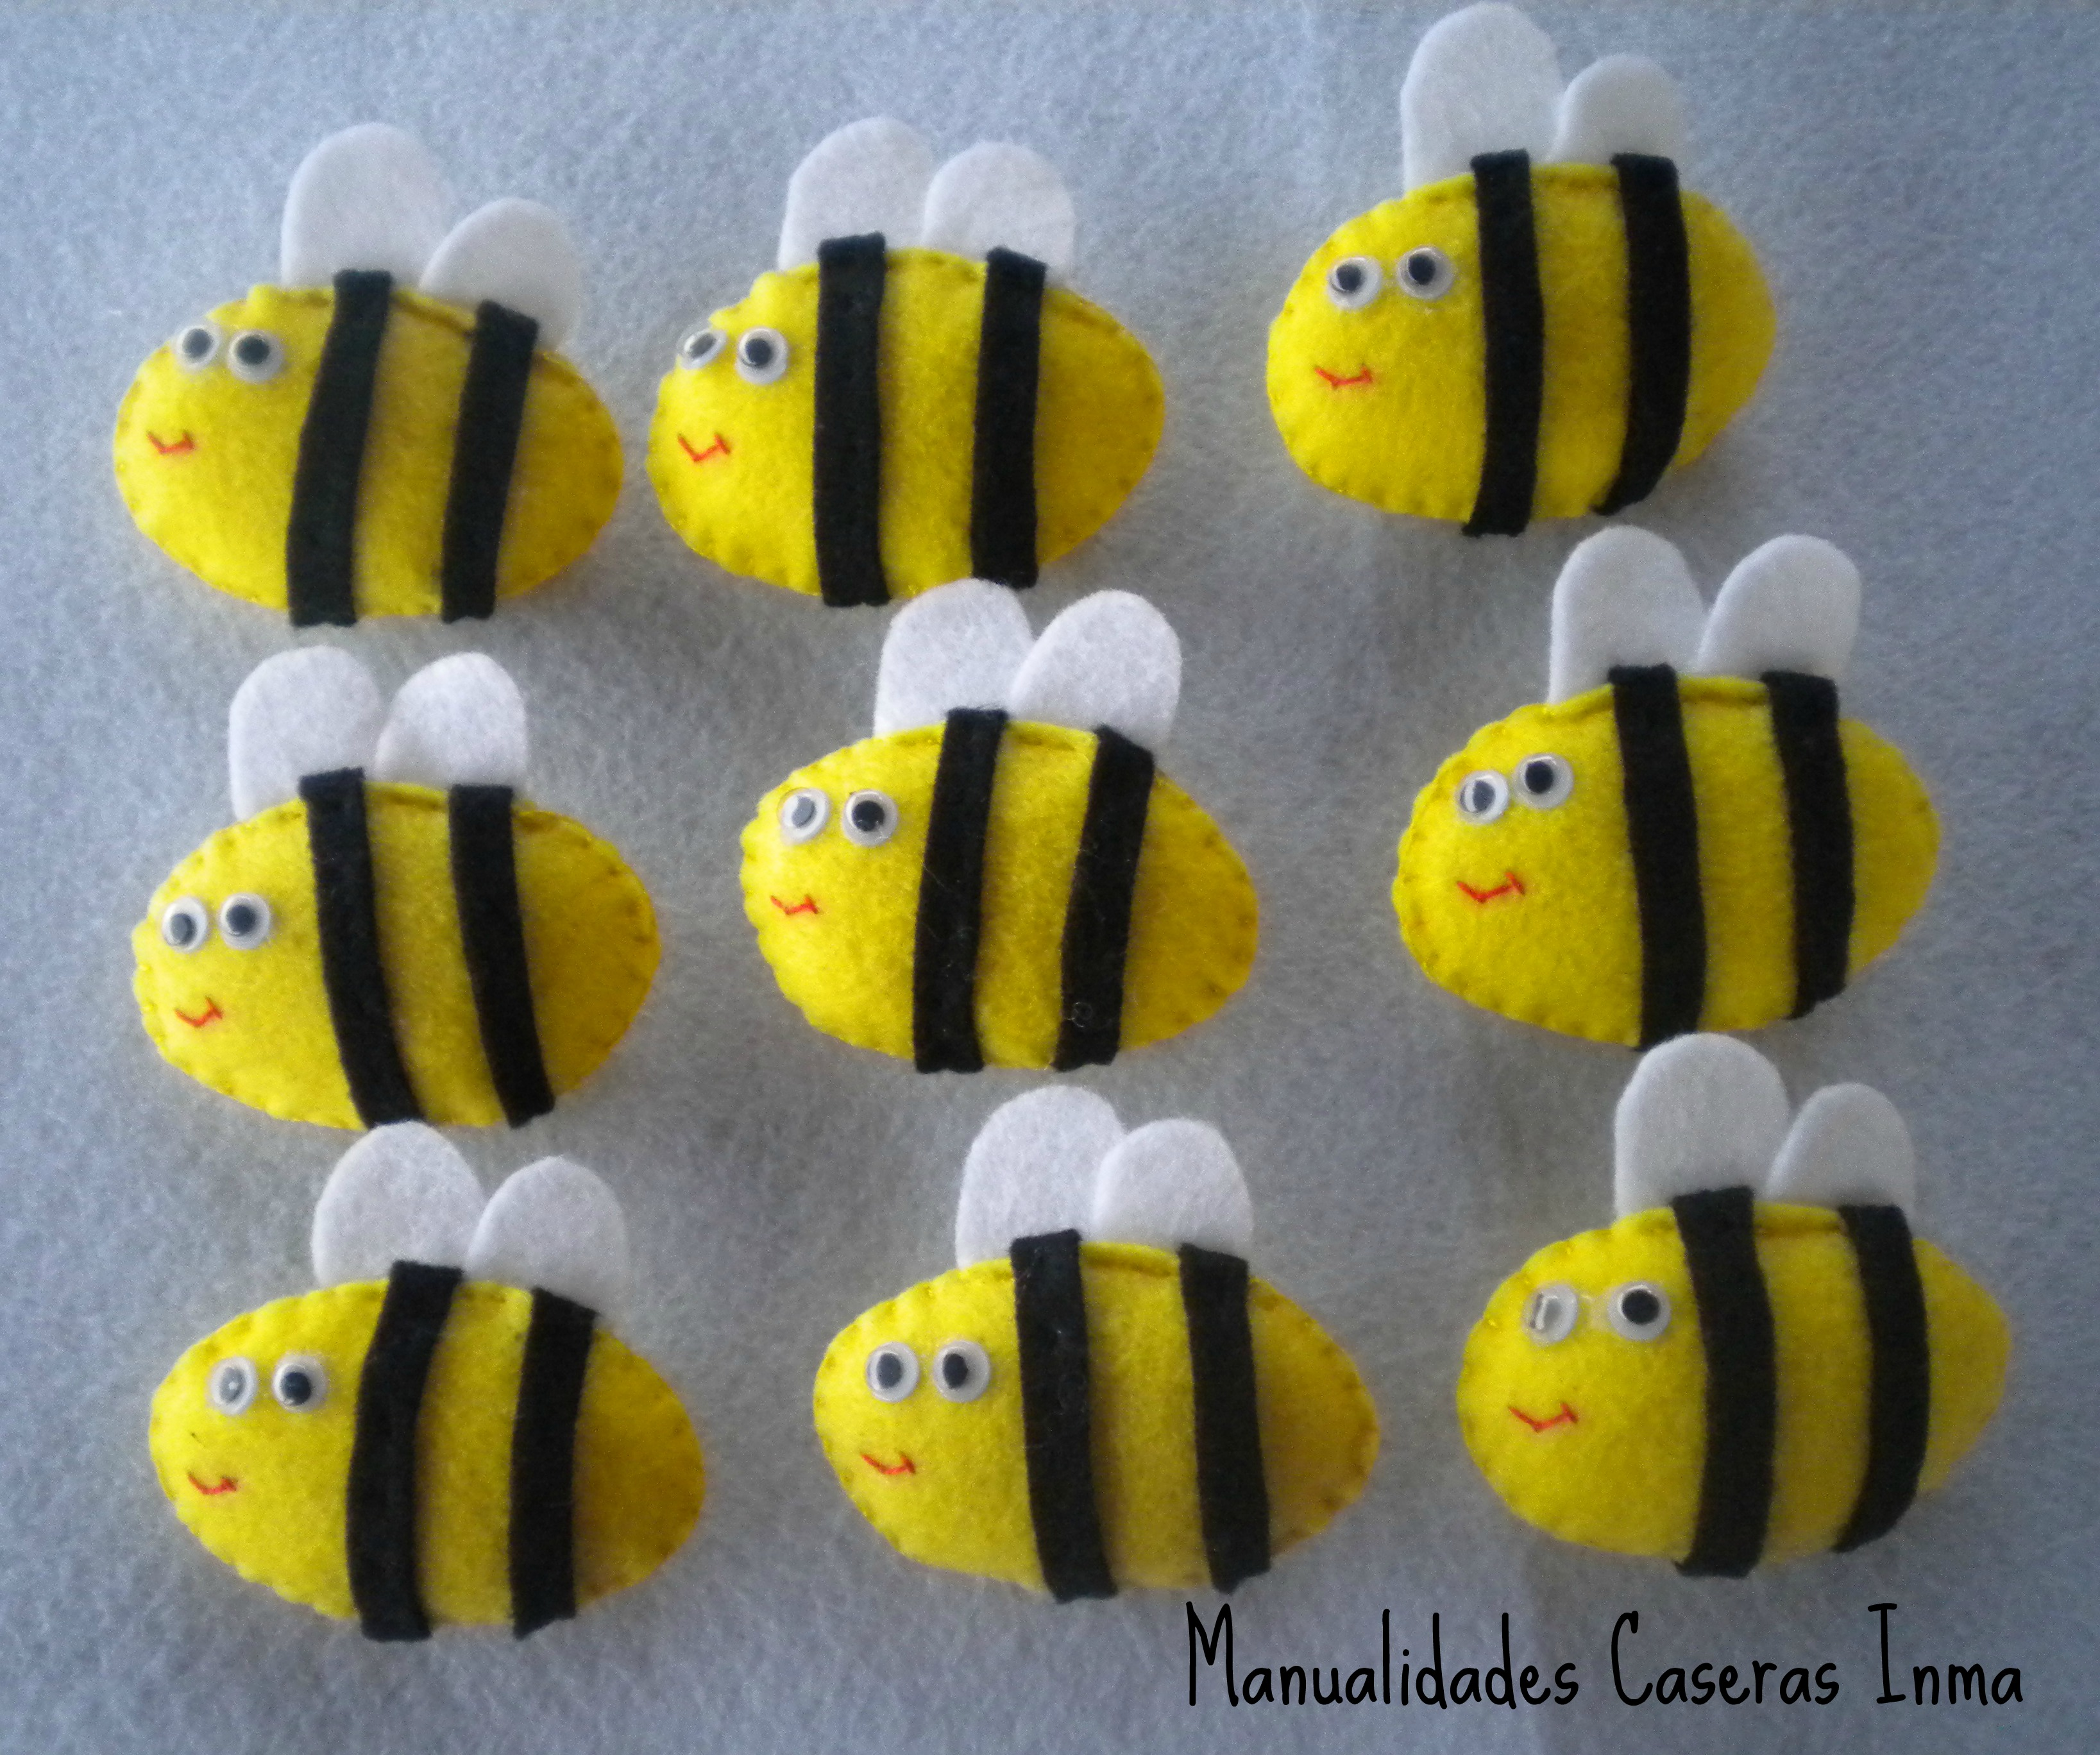 Manualidades Caseras Inma_ broche abeja